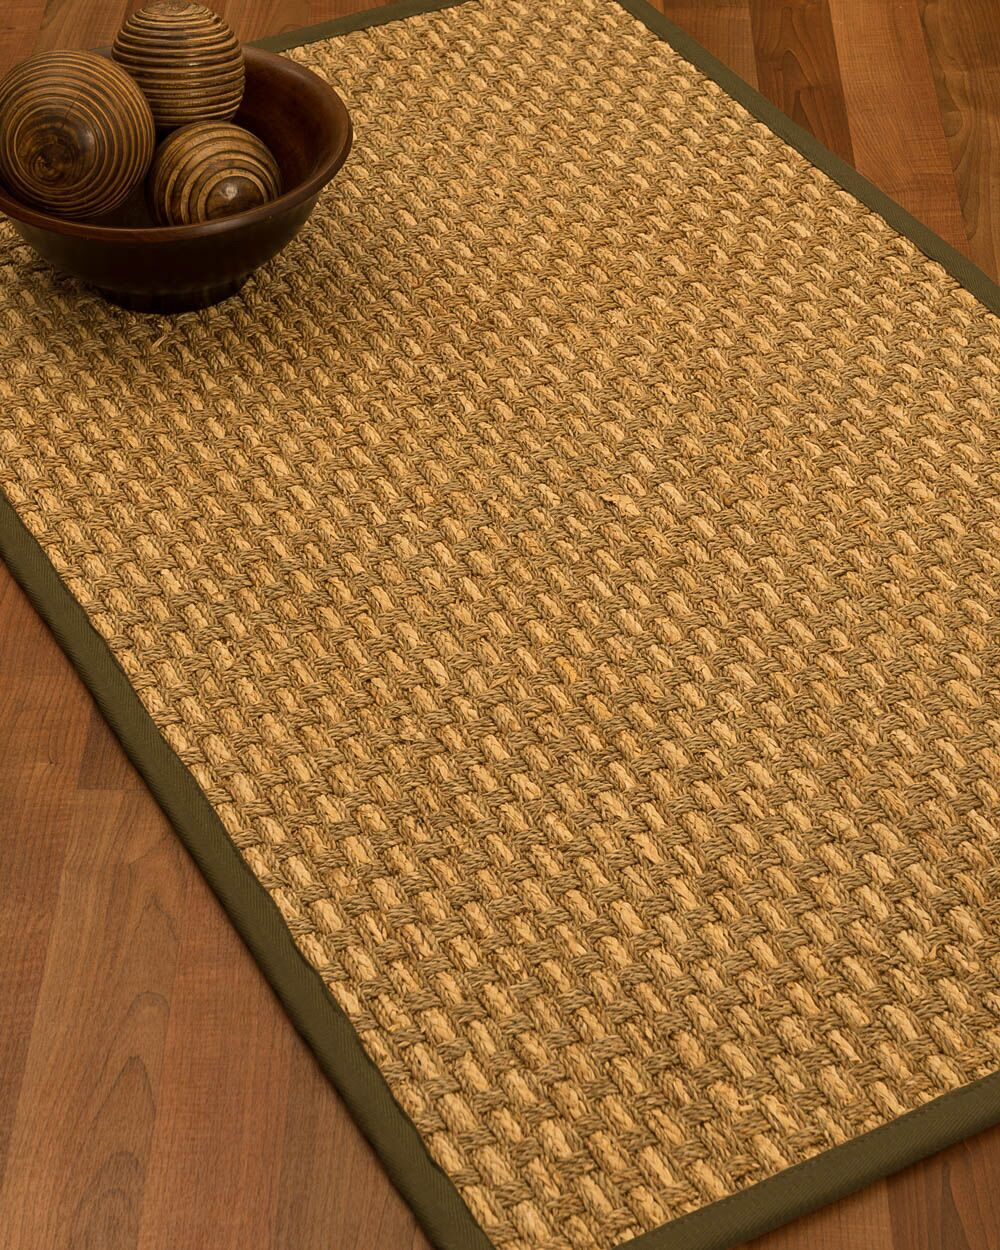 Castiglia Border Hand-Woven Beige/Malt Area Rug Rug Size: Rectangle 5' x 8', Rug Pad Included: Yes